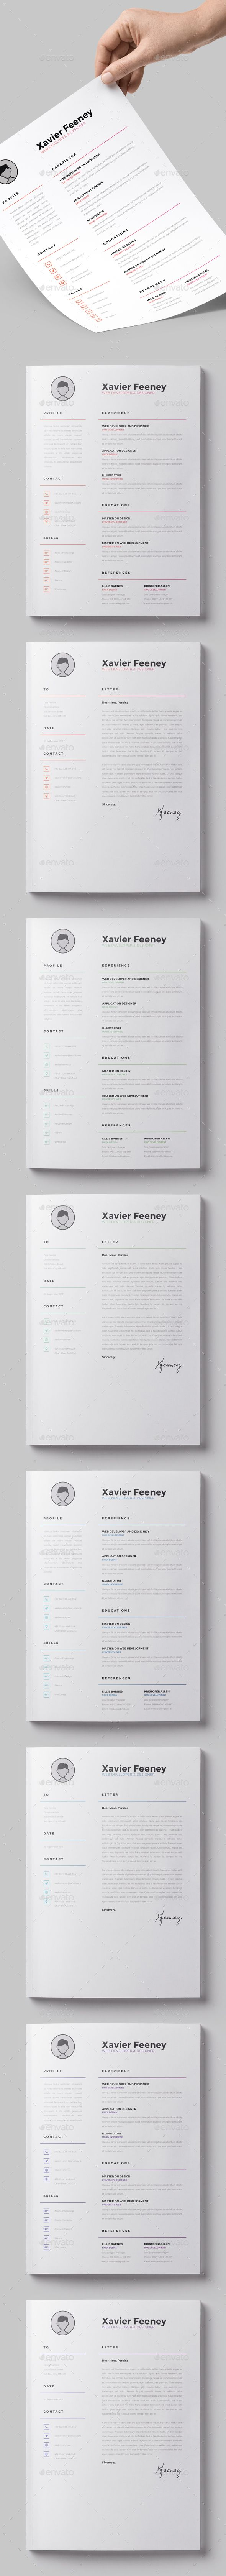 ResumeCoverletter  Resume Cv Logo Templates And Logos